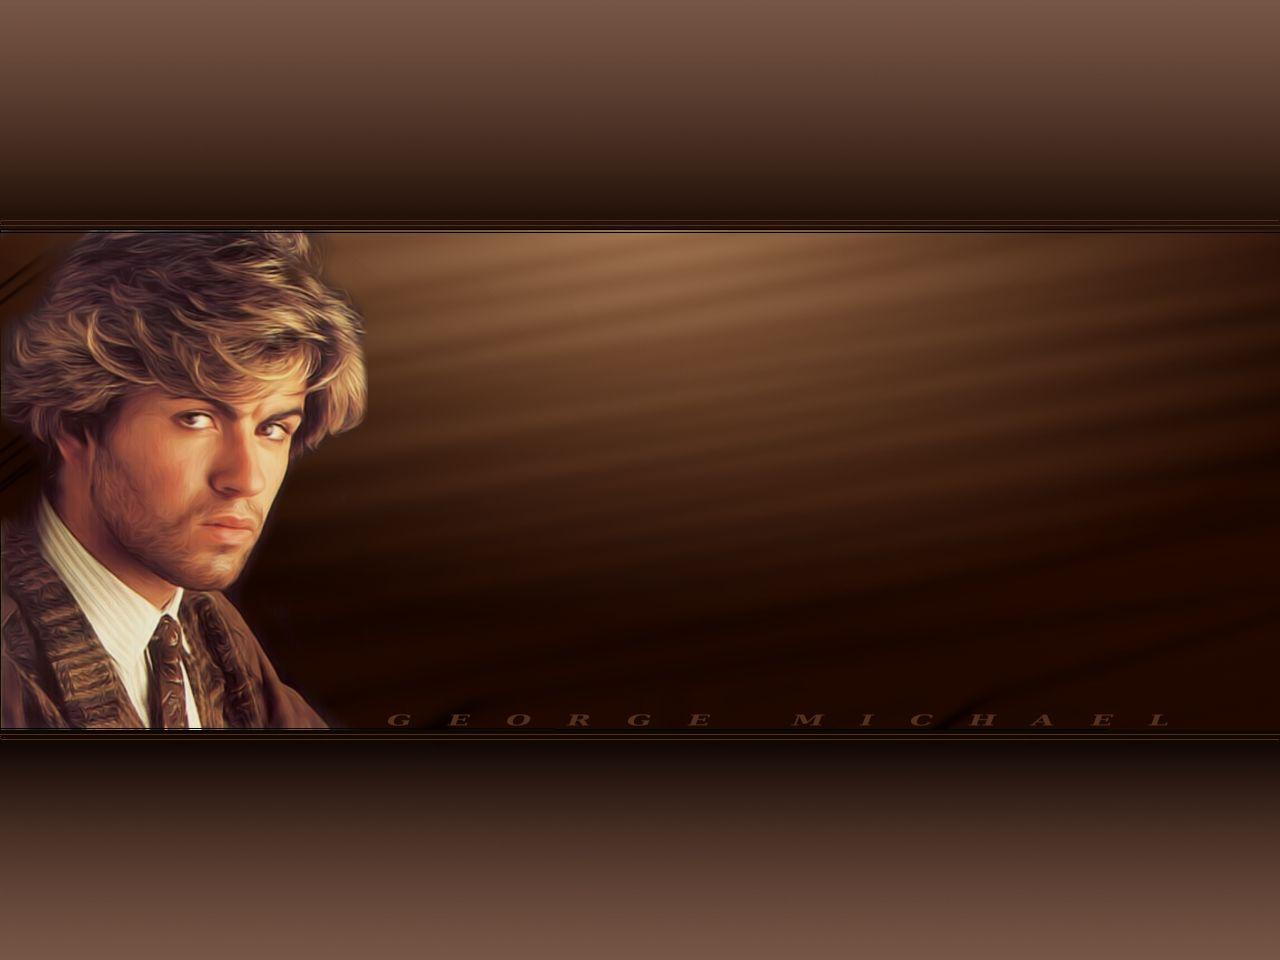 George michael 8 wallpapers